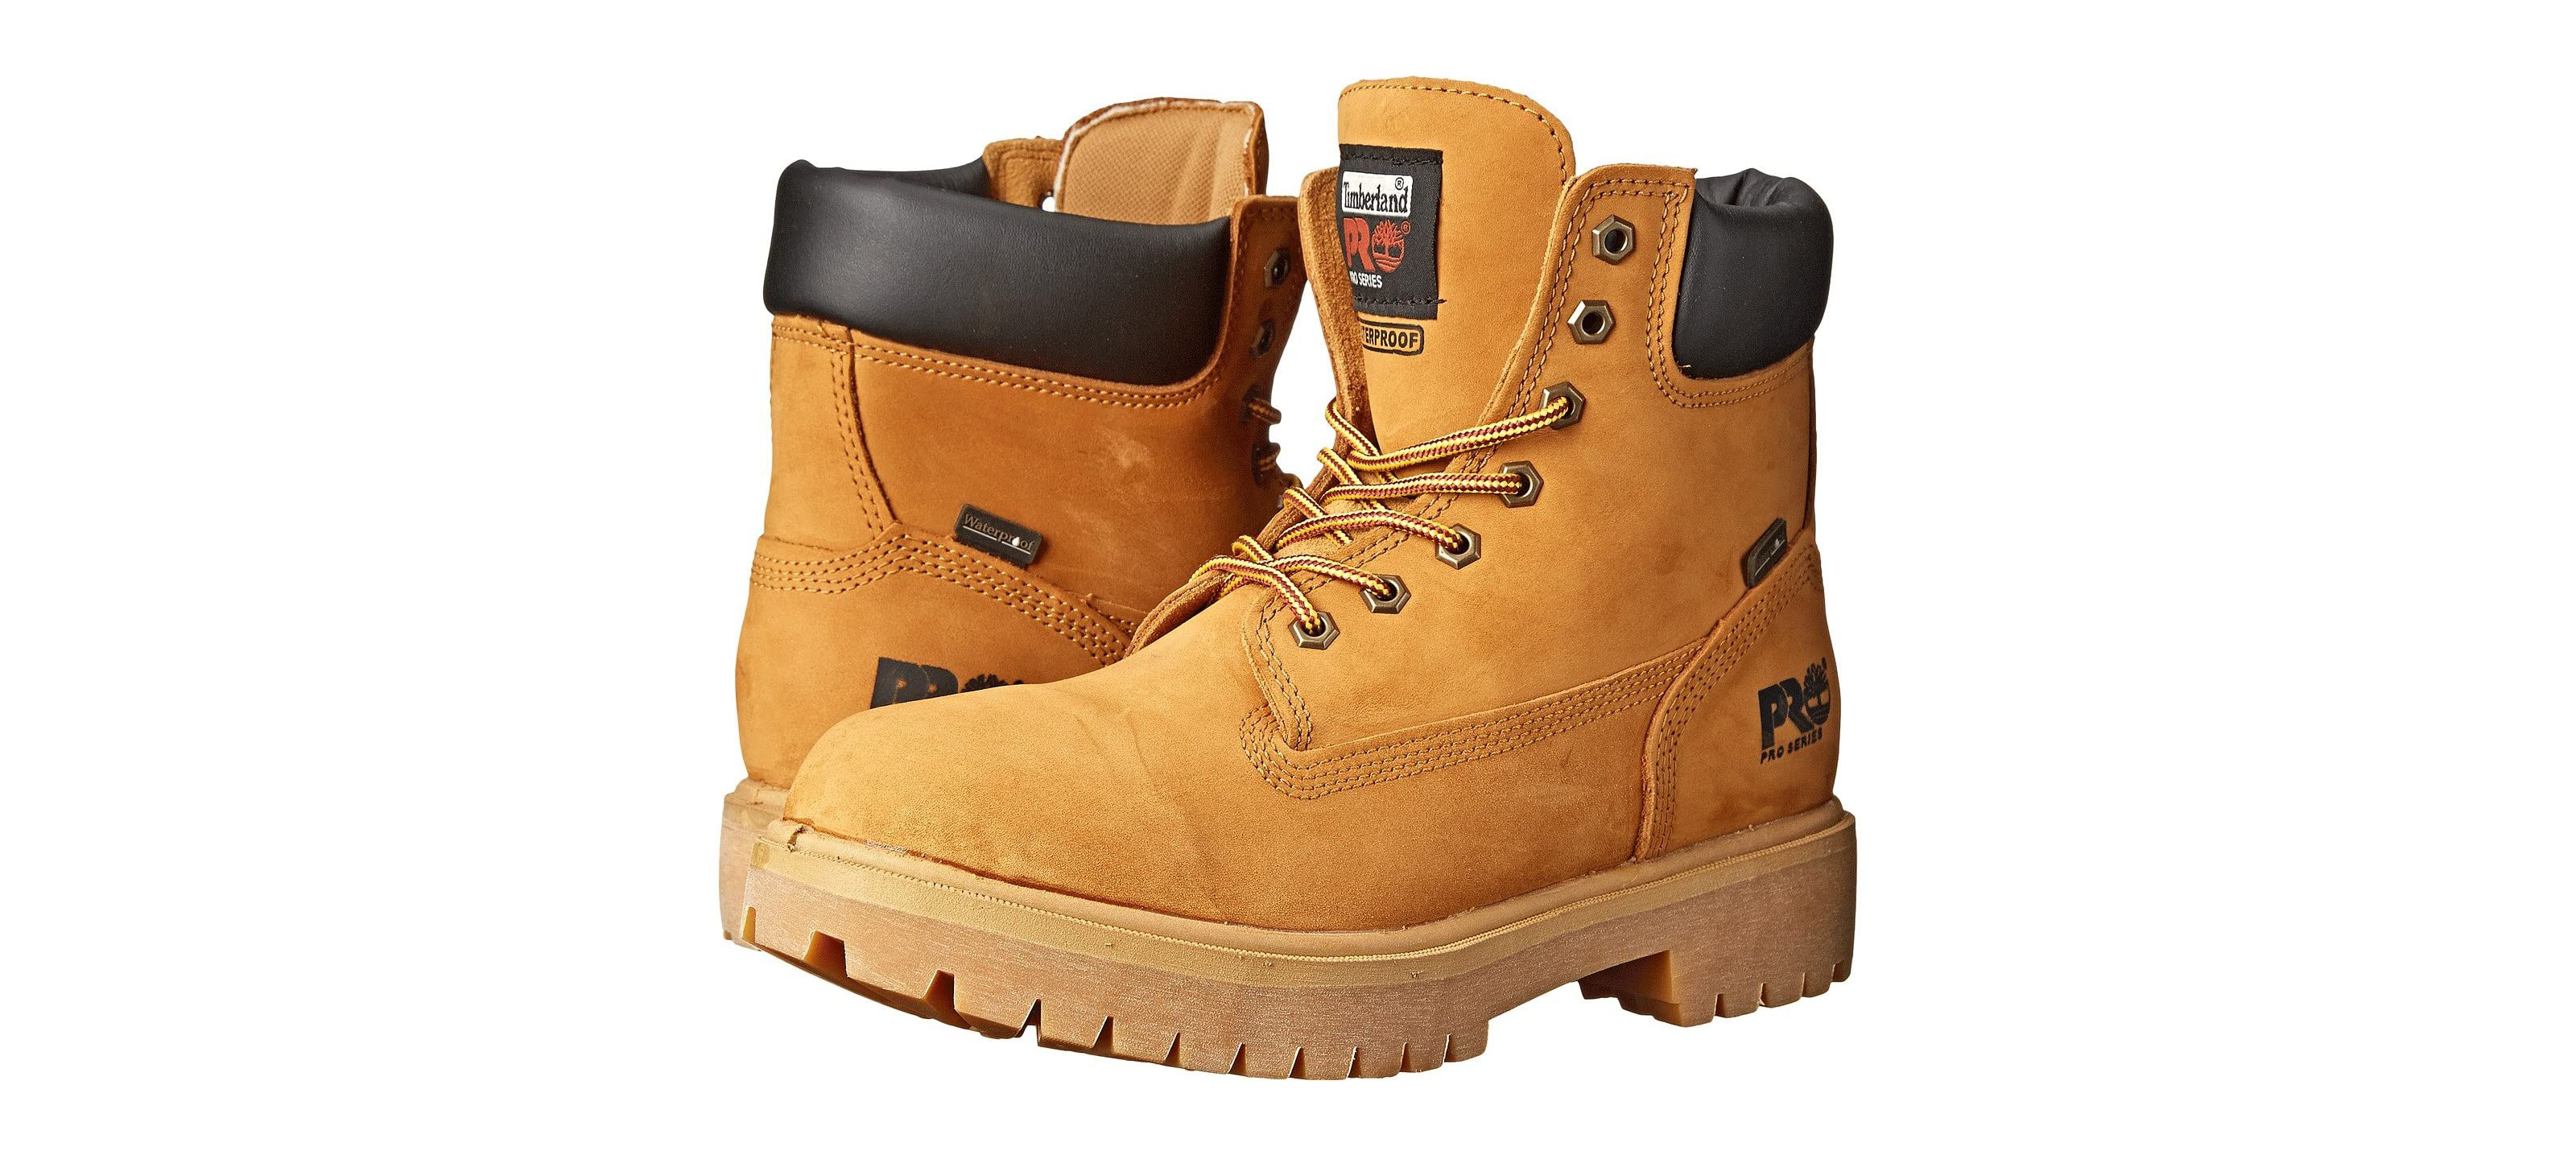 These Discounted Timberland Soft Toe Boots